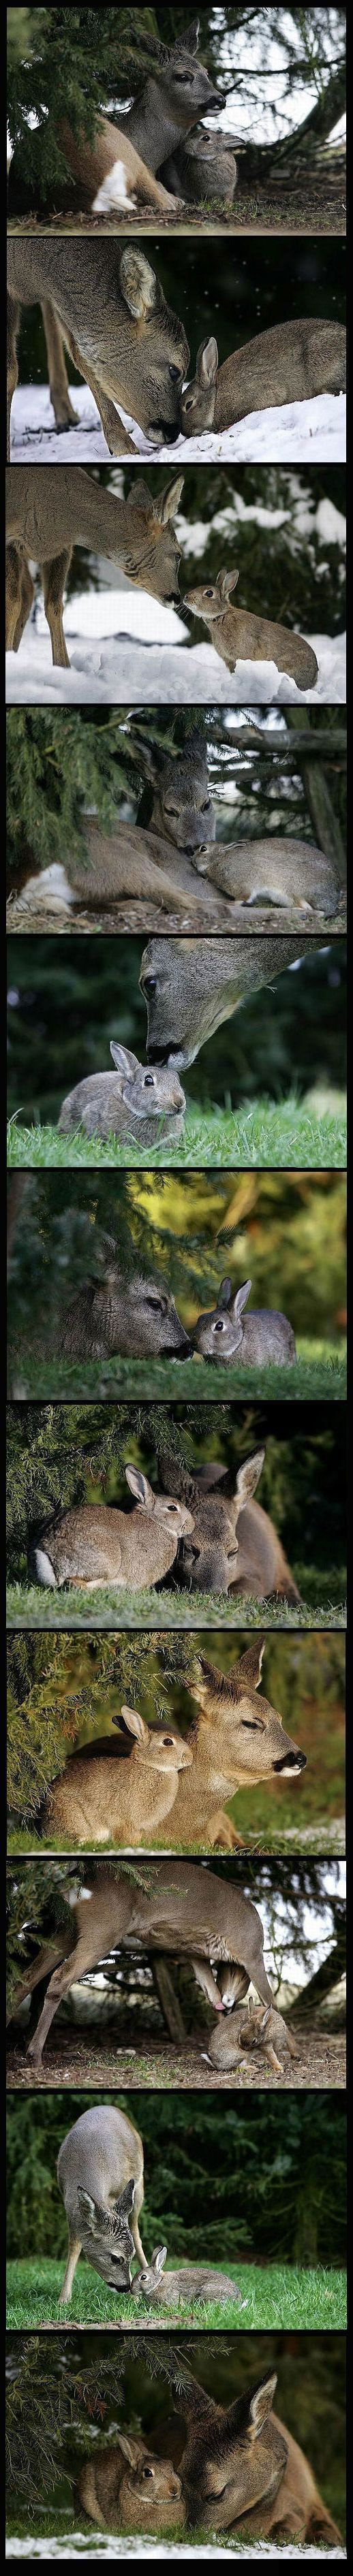 Real-life Bambi and Thumper captured by a photographer.